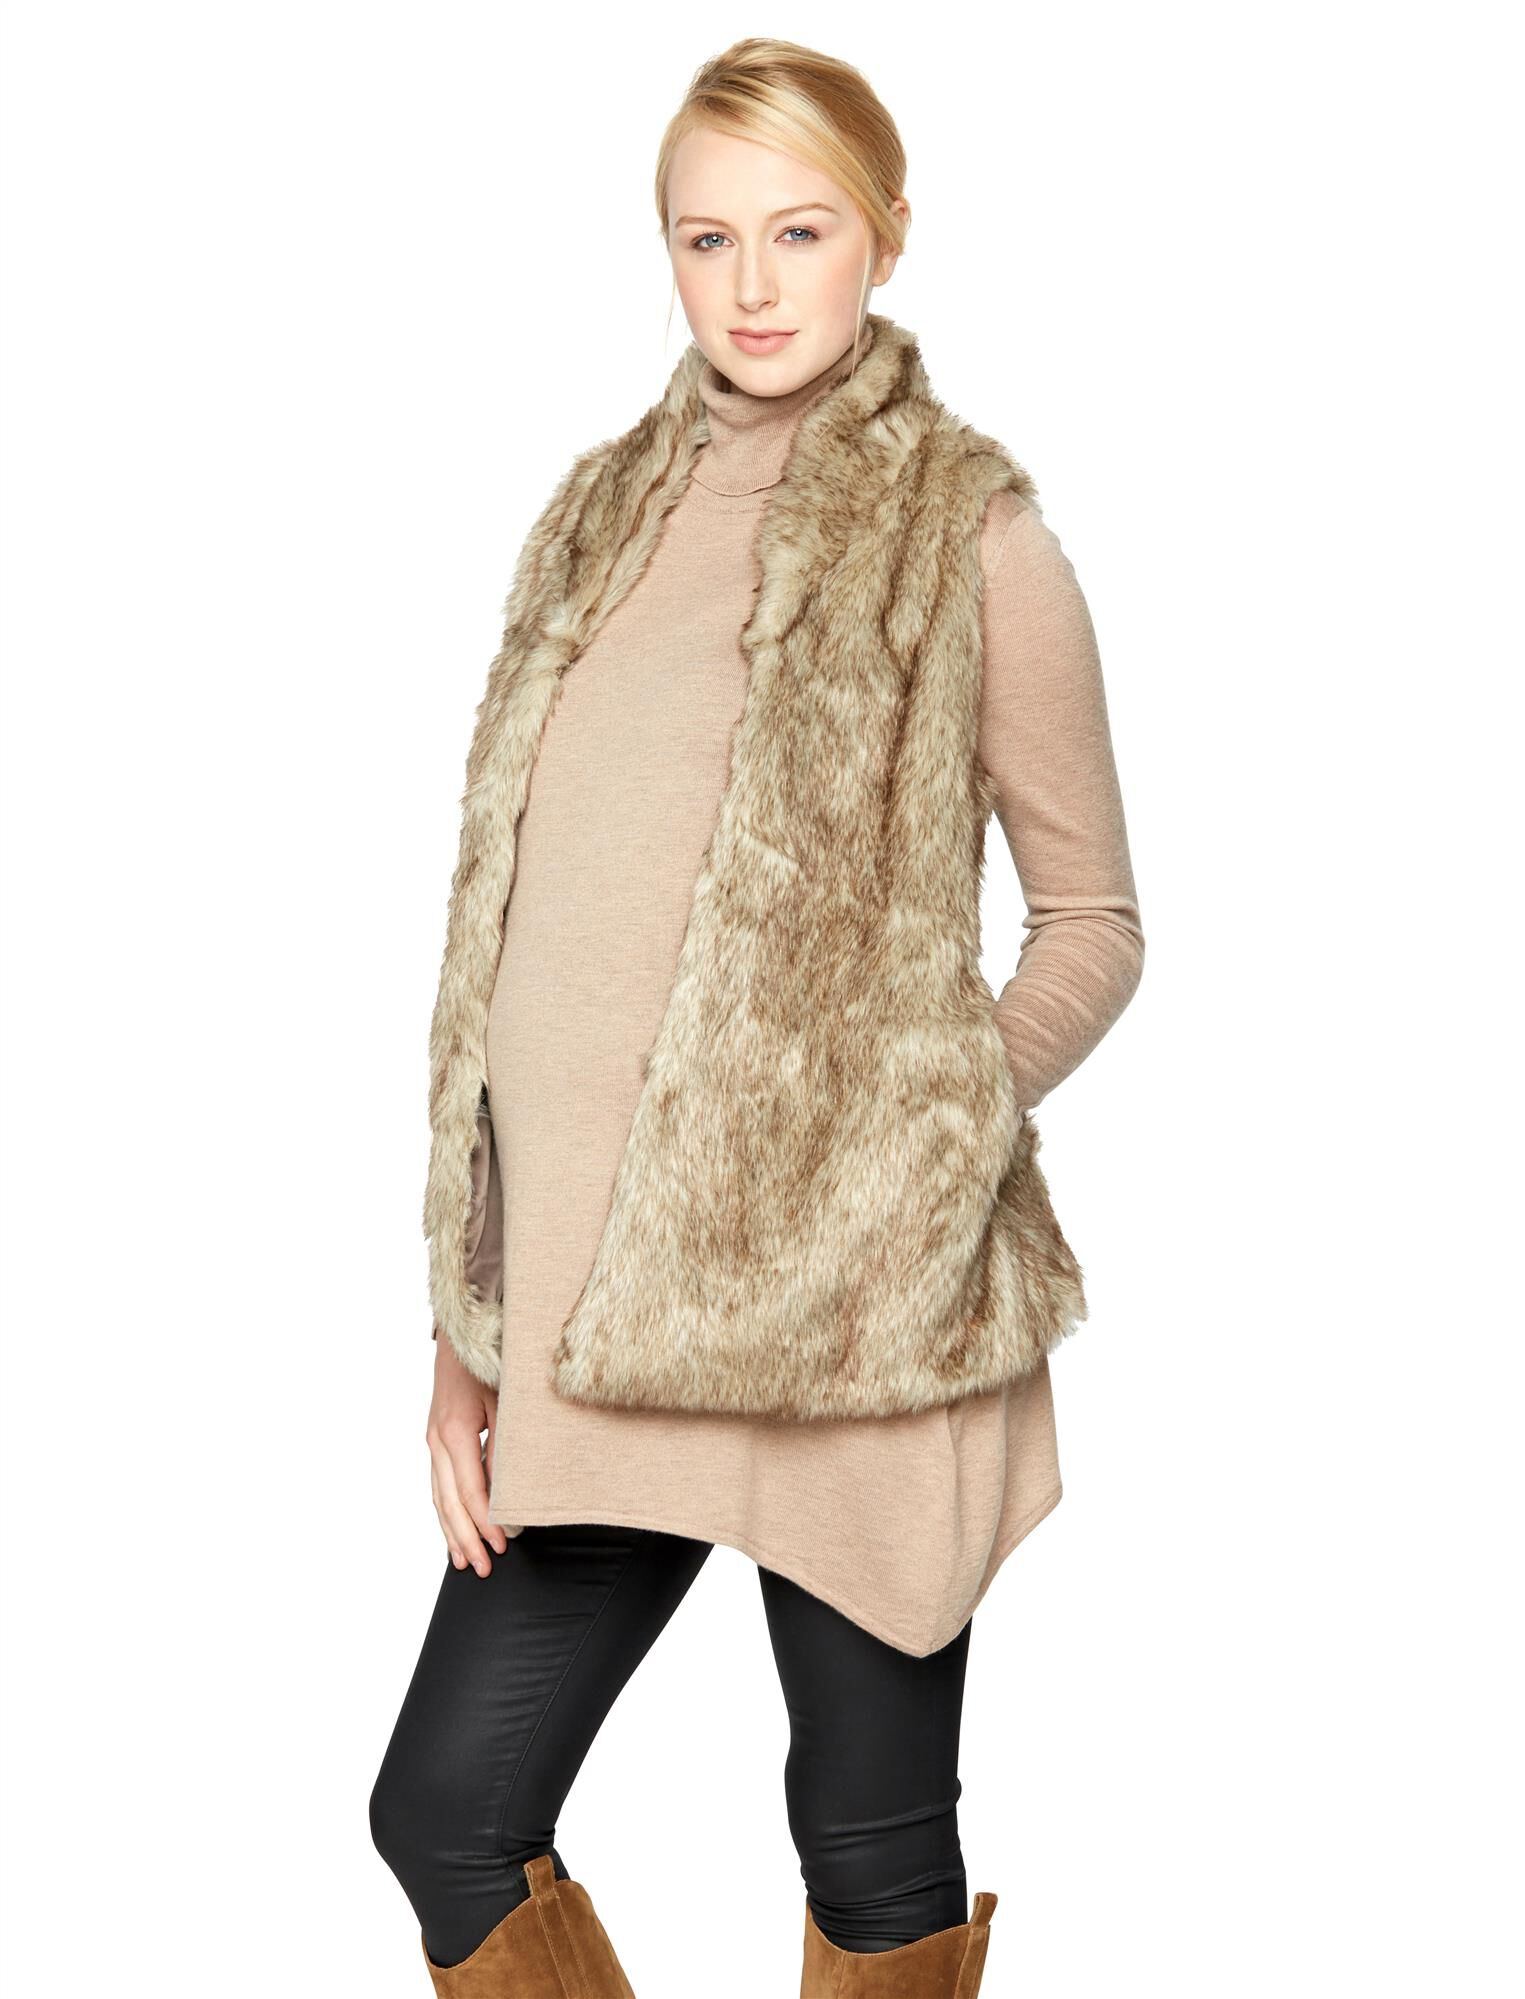 Olive & Oak Faux Fur Maternity Vest